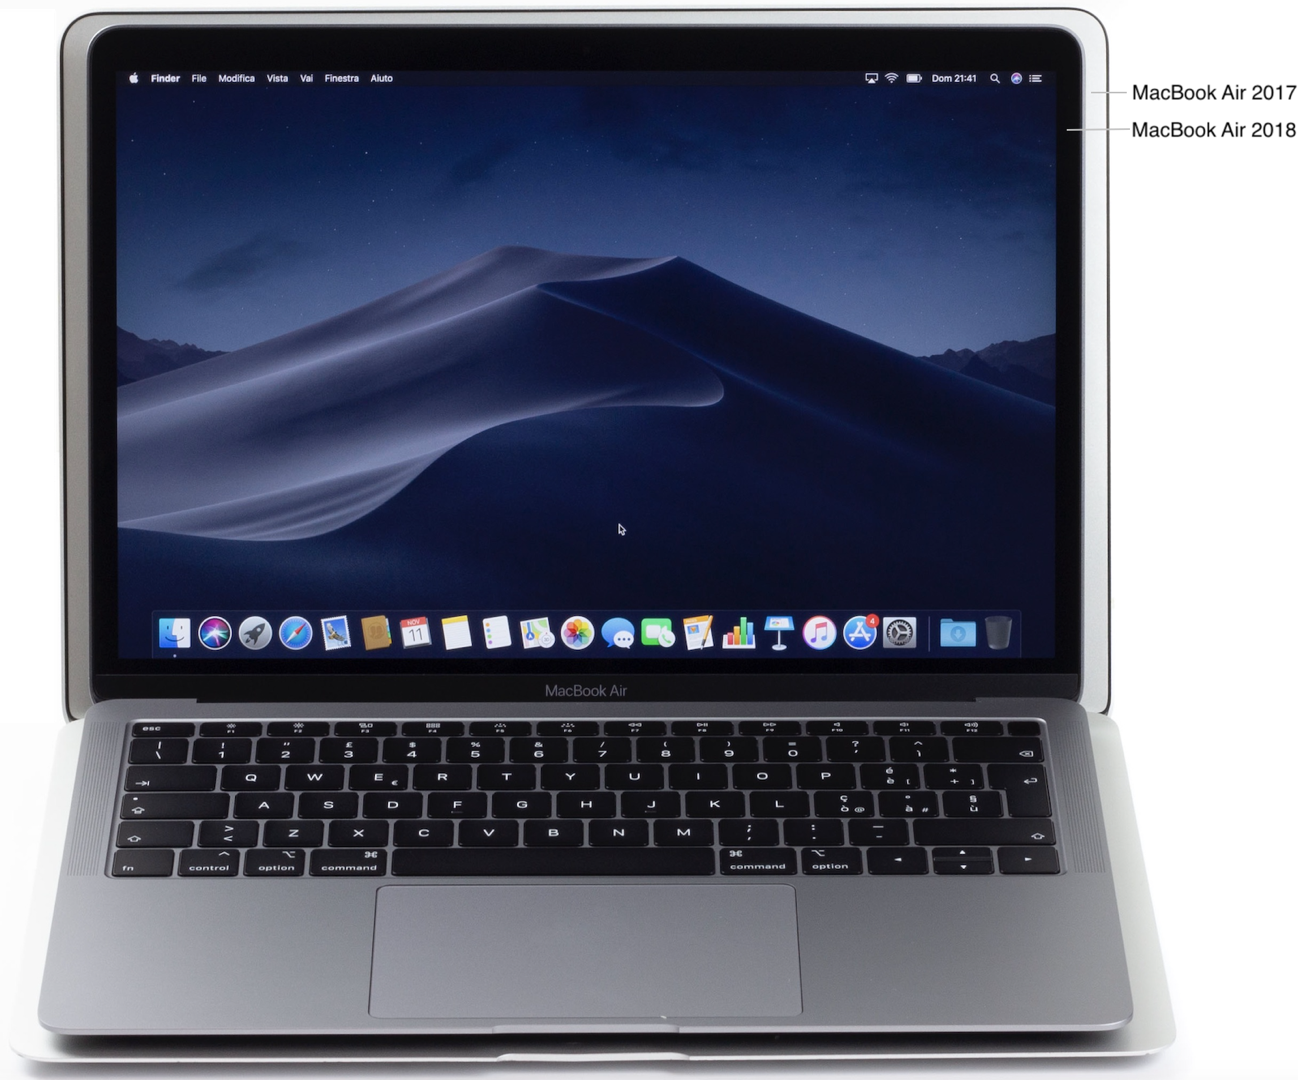 MacBook Air 2018 2017